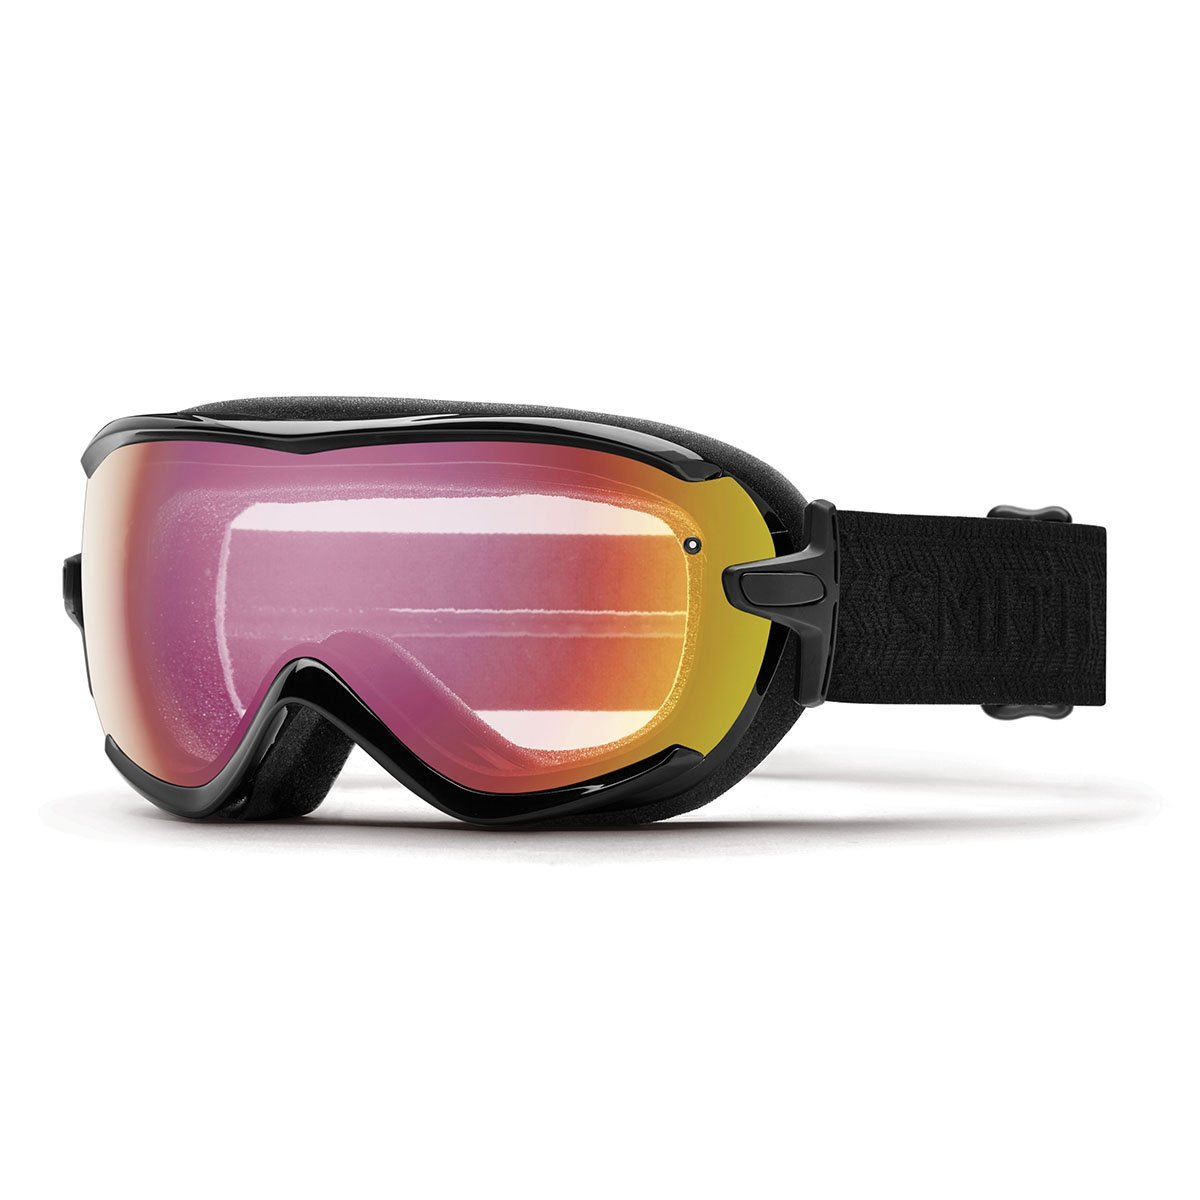 Smith Optics 2016 Women's Virtue Snow Goggle w Photochromic Lens by Smith